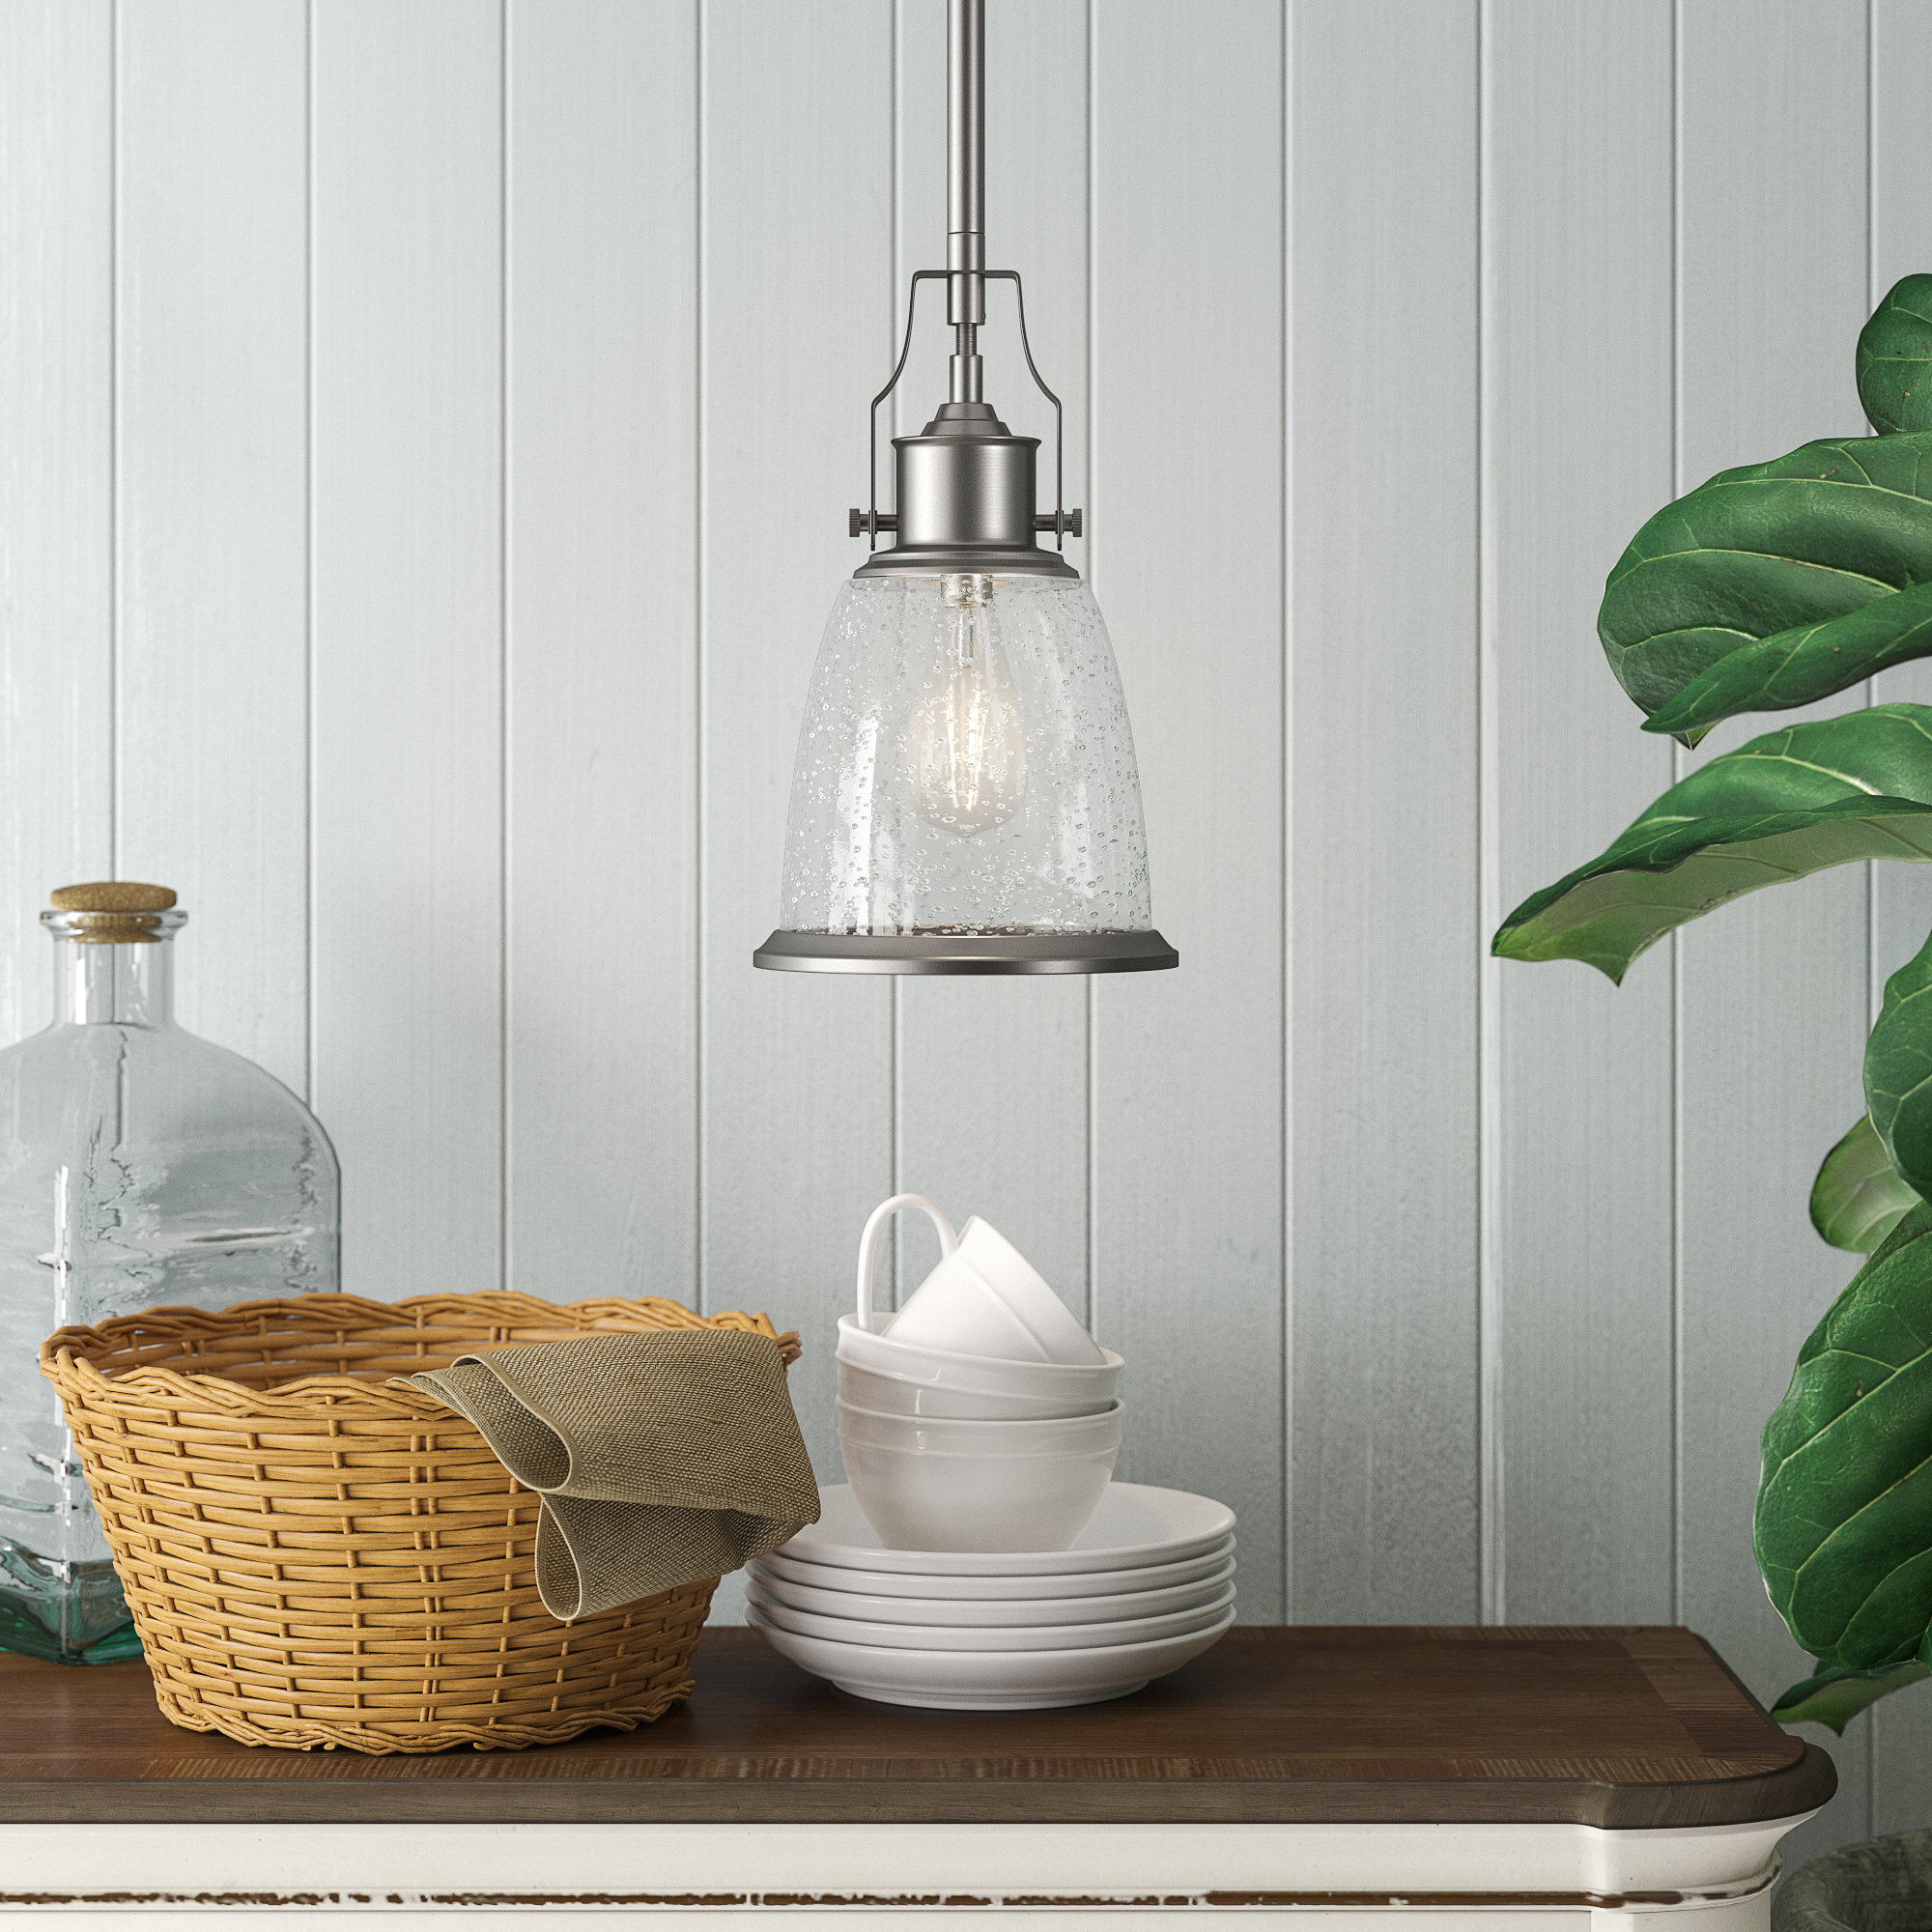 Kathi 1 Light Cone Pendant With Regard To Most Recently Released Devereaux 1 Light Single Globe Pendants (Gallery 3 of 20)